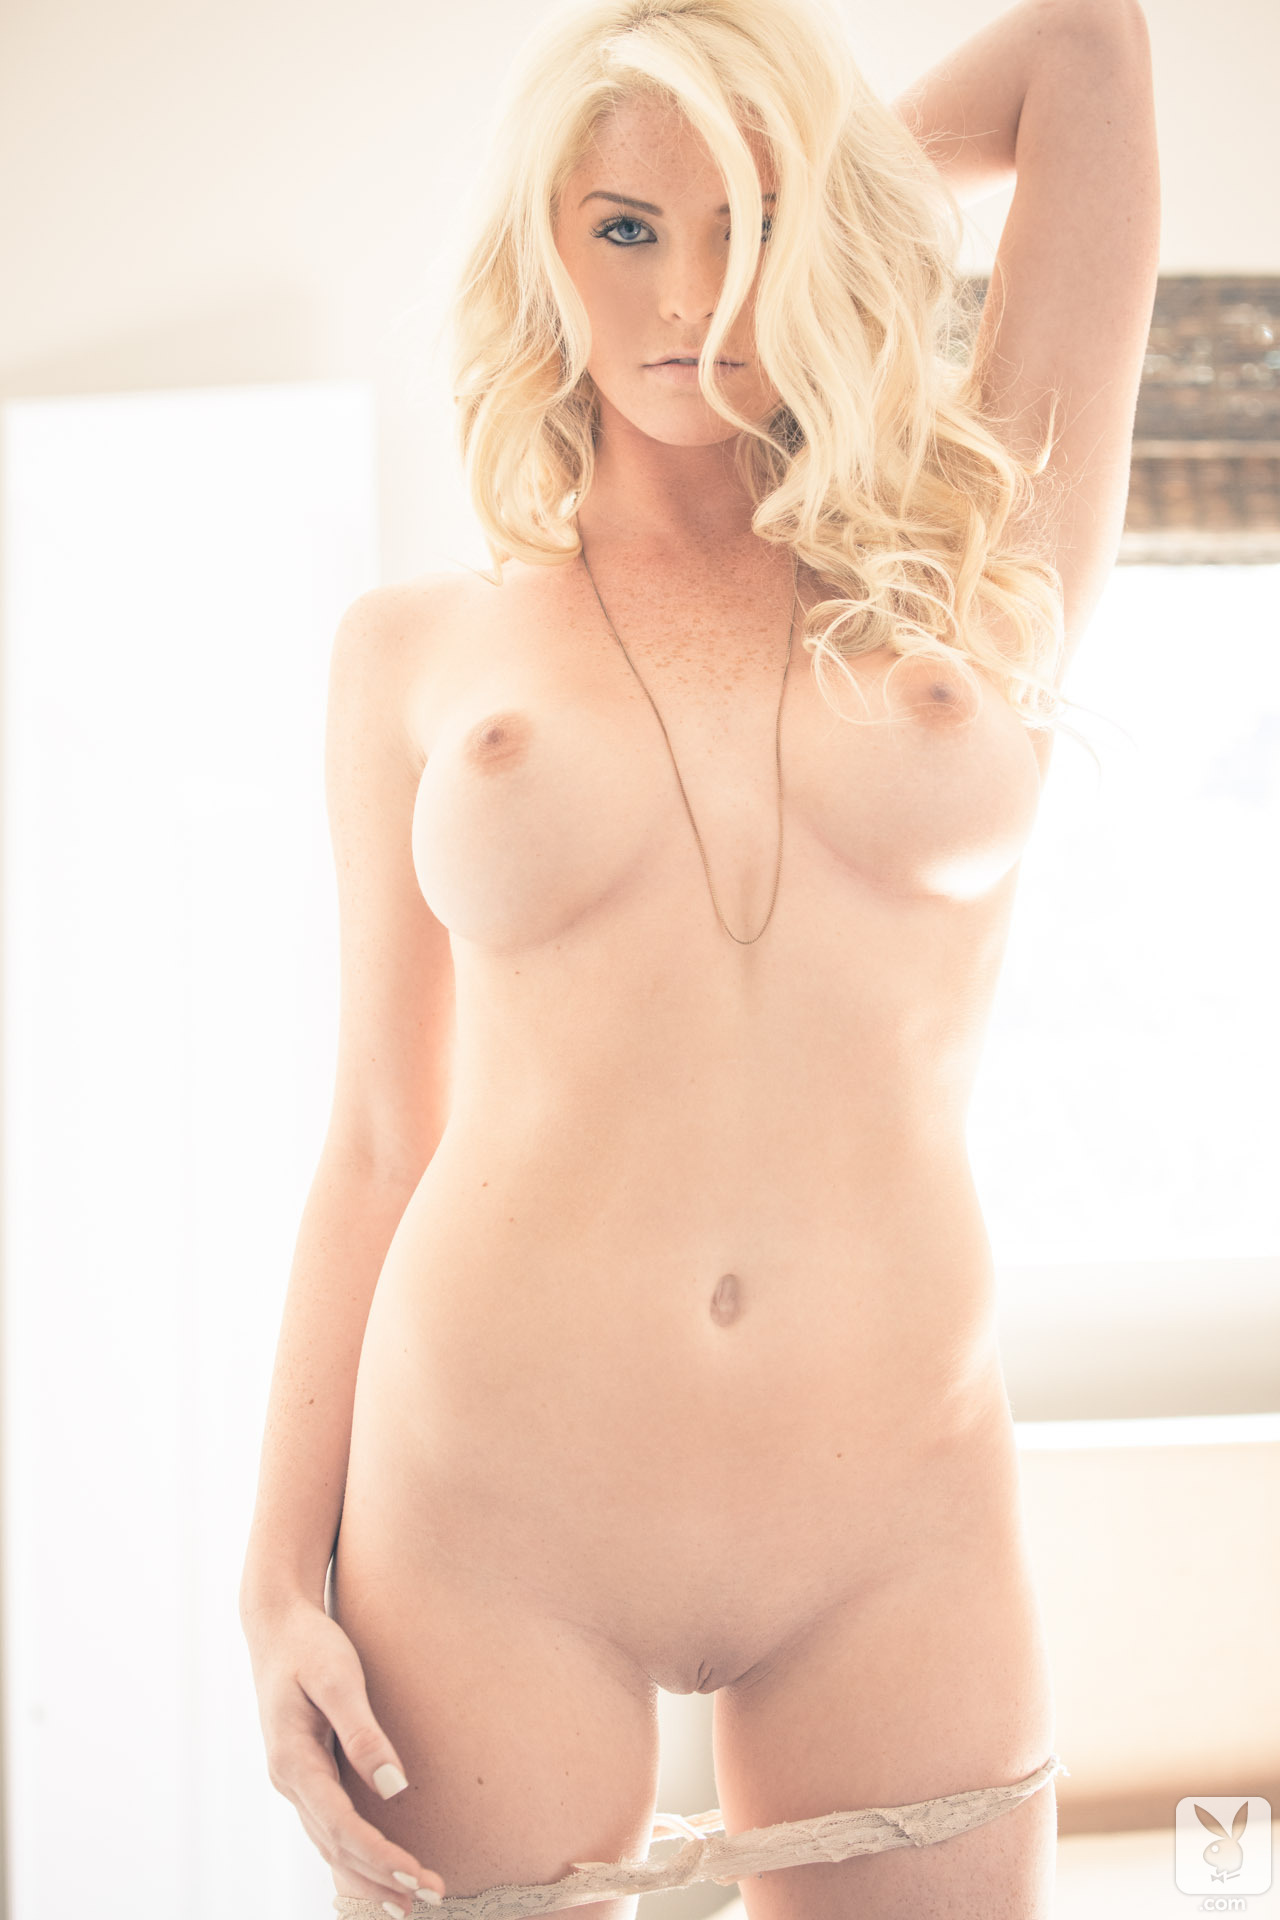 carly lauren nude